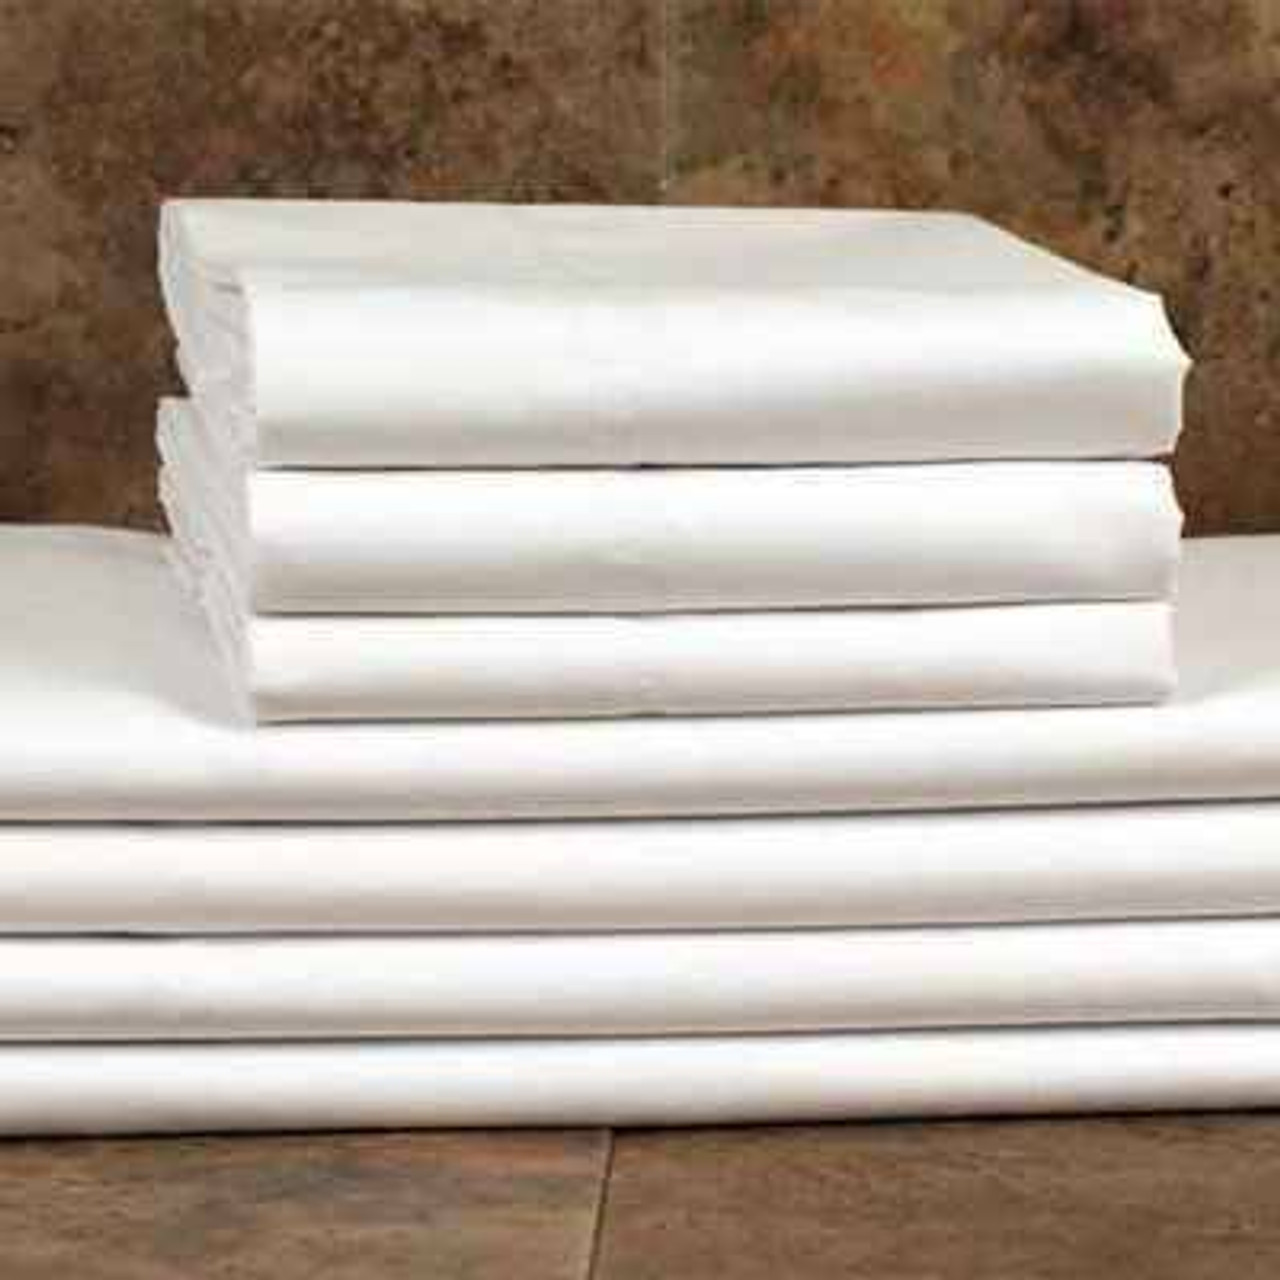 1888 Mills 1888 Mills or Oasis or Fitted Sheet-15in Pocket or 12-24 Per Pack